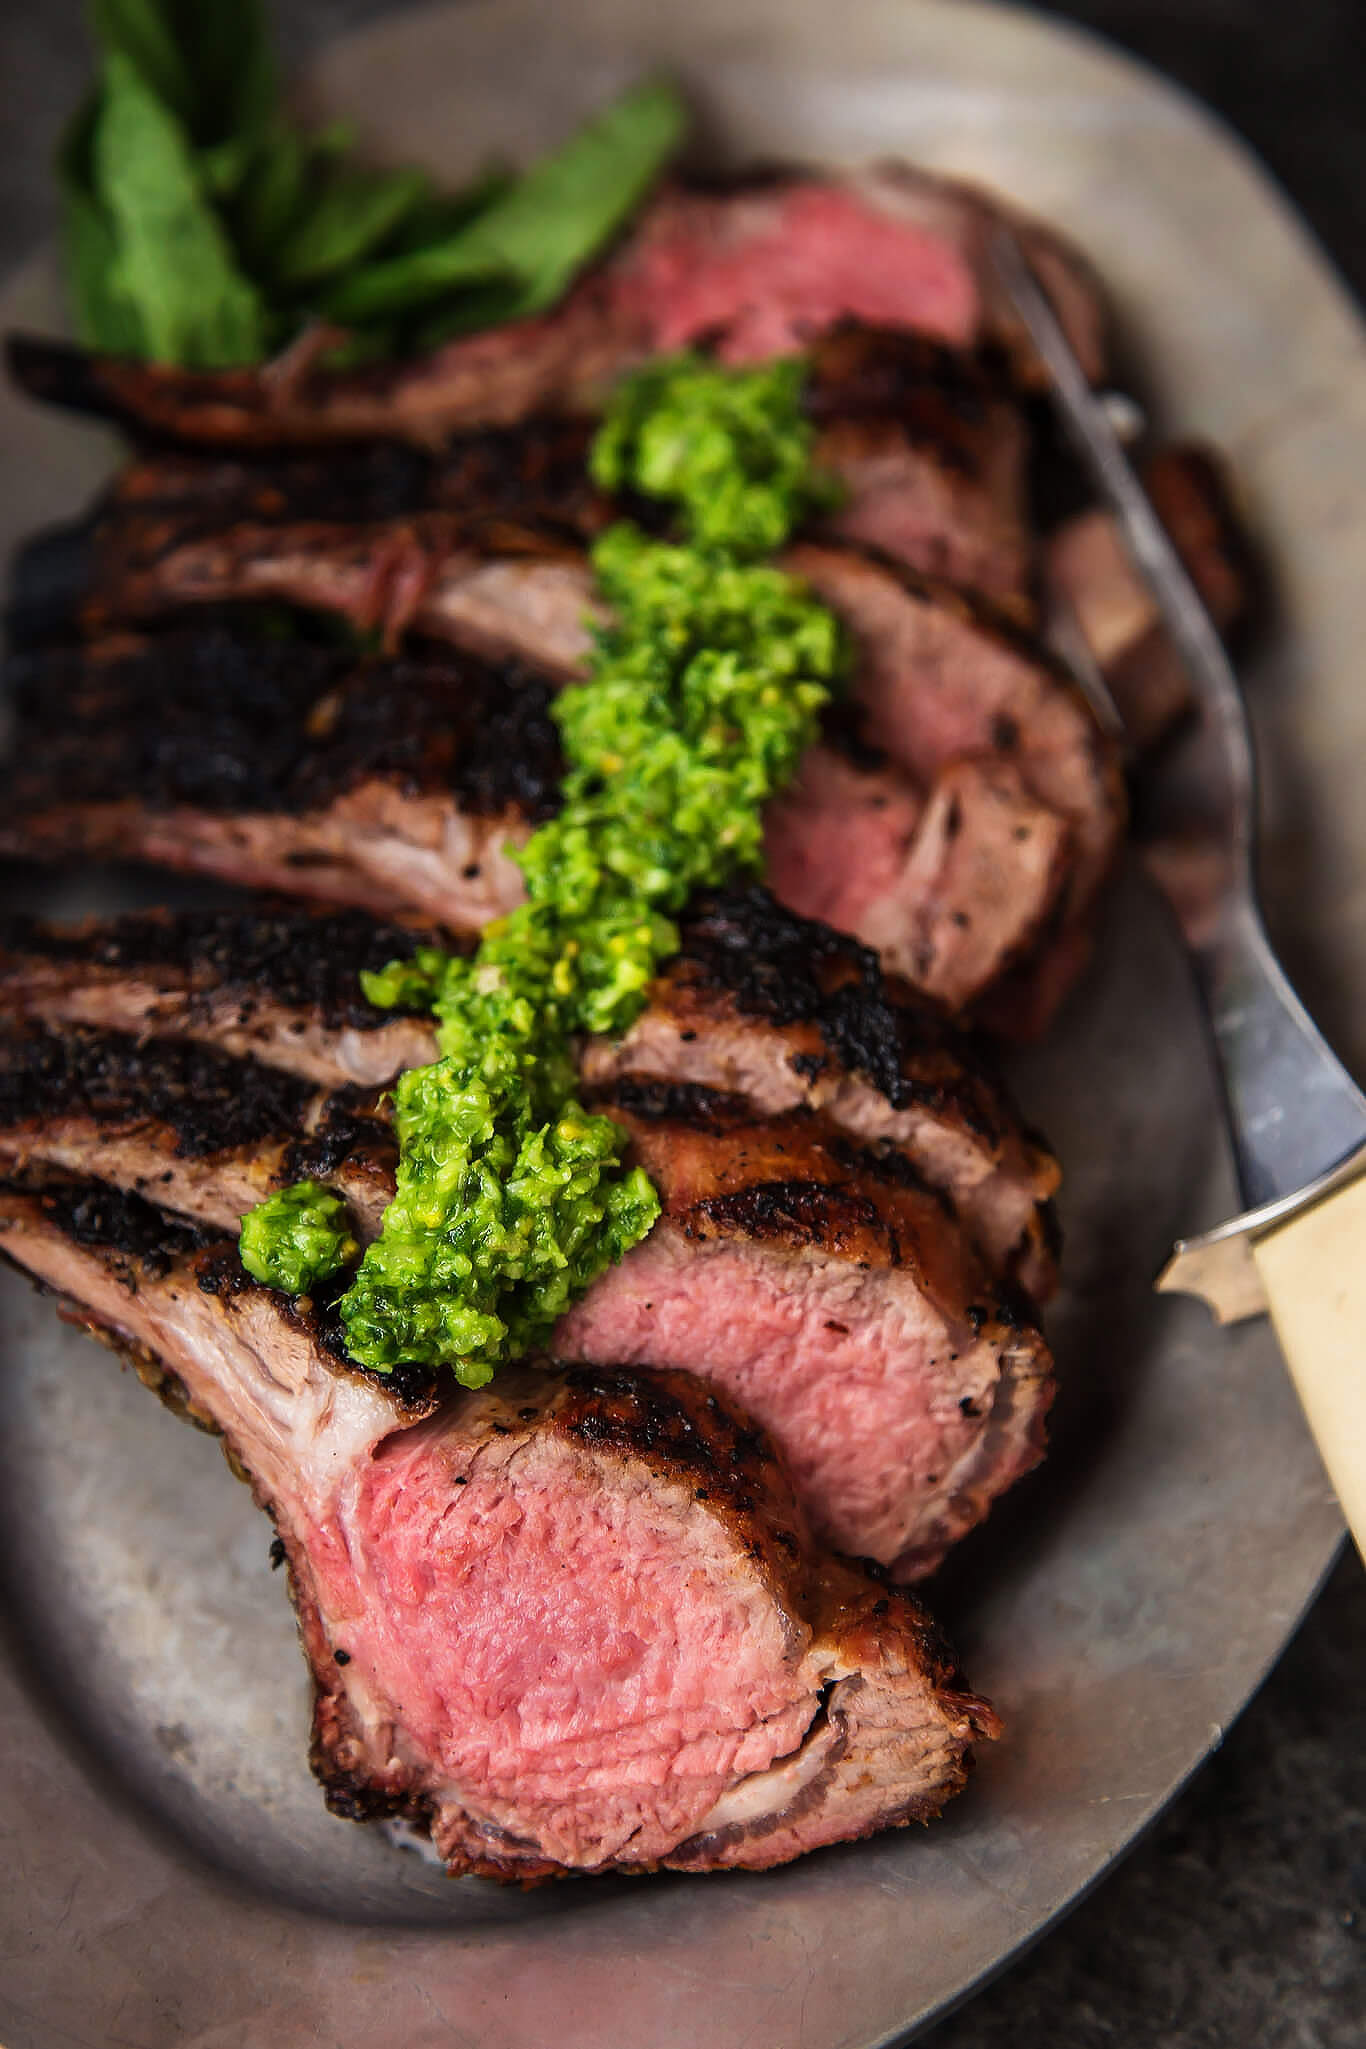 Grilled Rack of Lamb with Pistachio Basil Pesto will upgrade your next BBQ or tailgate. Frenched rack of lamb is grilled, sliced & topped with basil pesto. | platingsandpairings.com